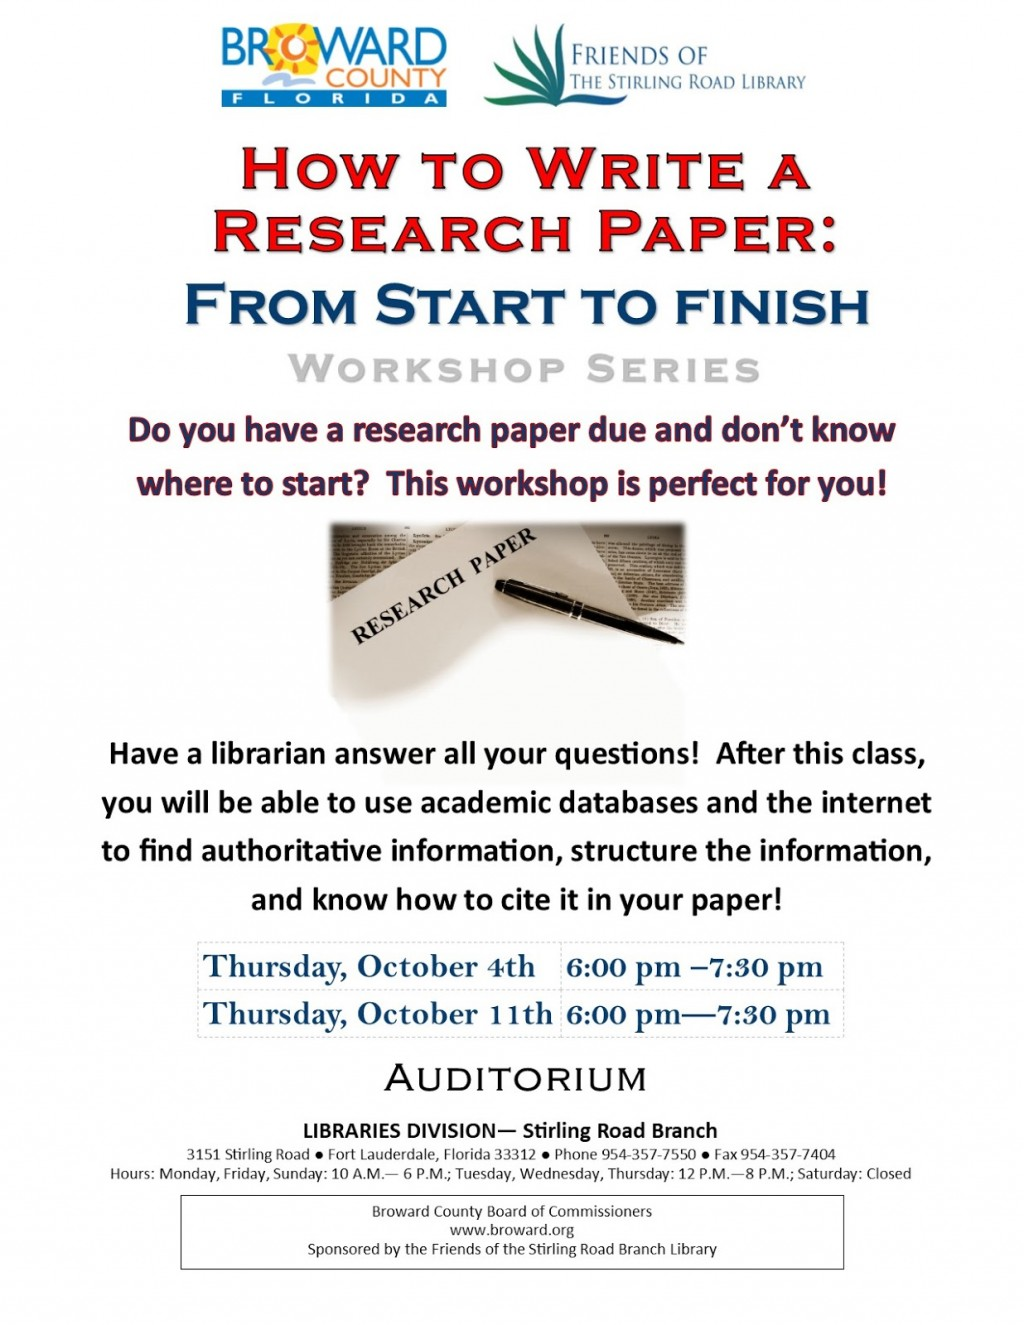 019 Research Paper How To Write Papers Best A - Pdf (2015) Conclusion An Introduction And Large